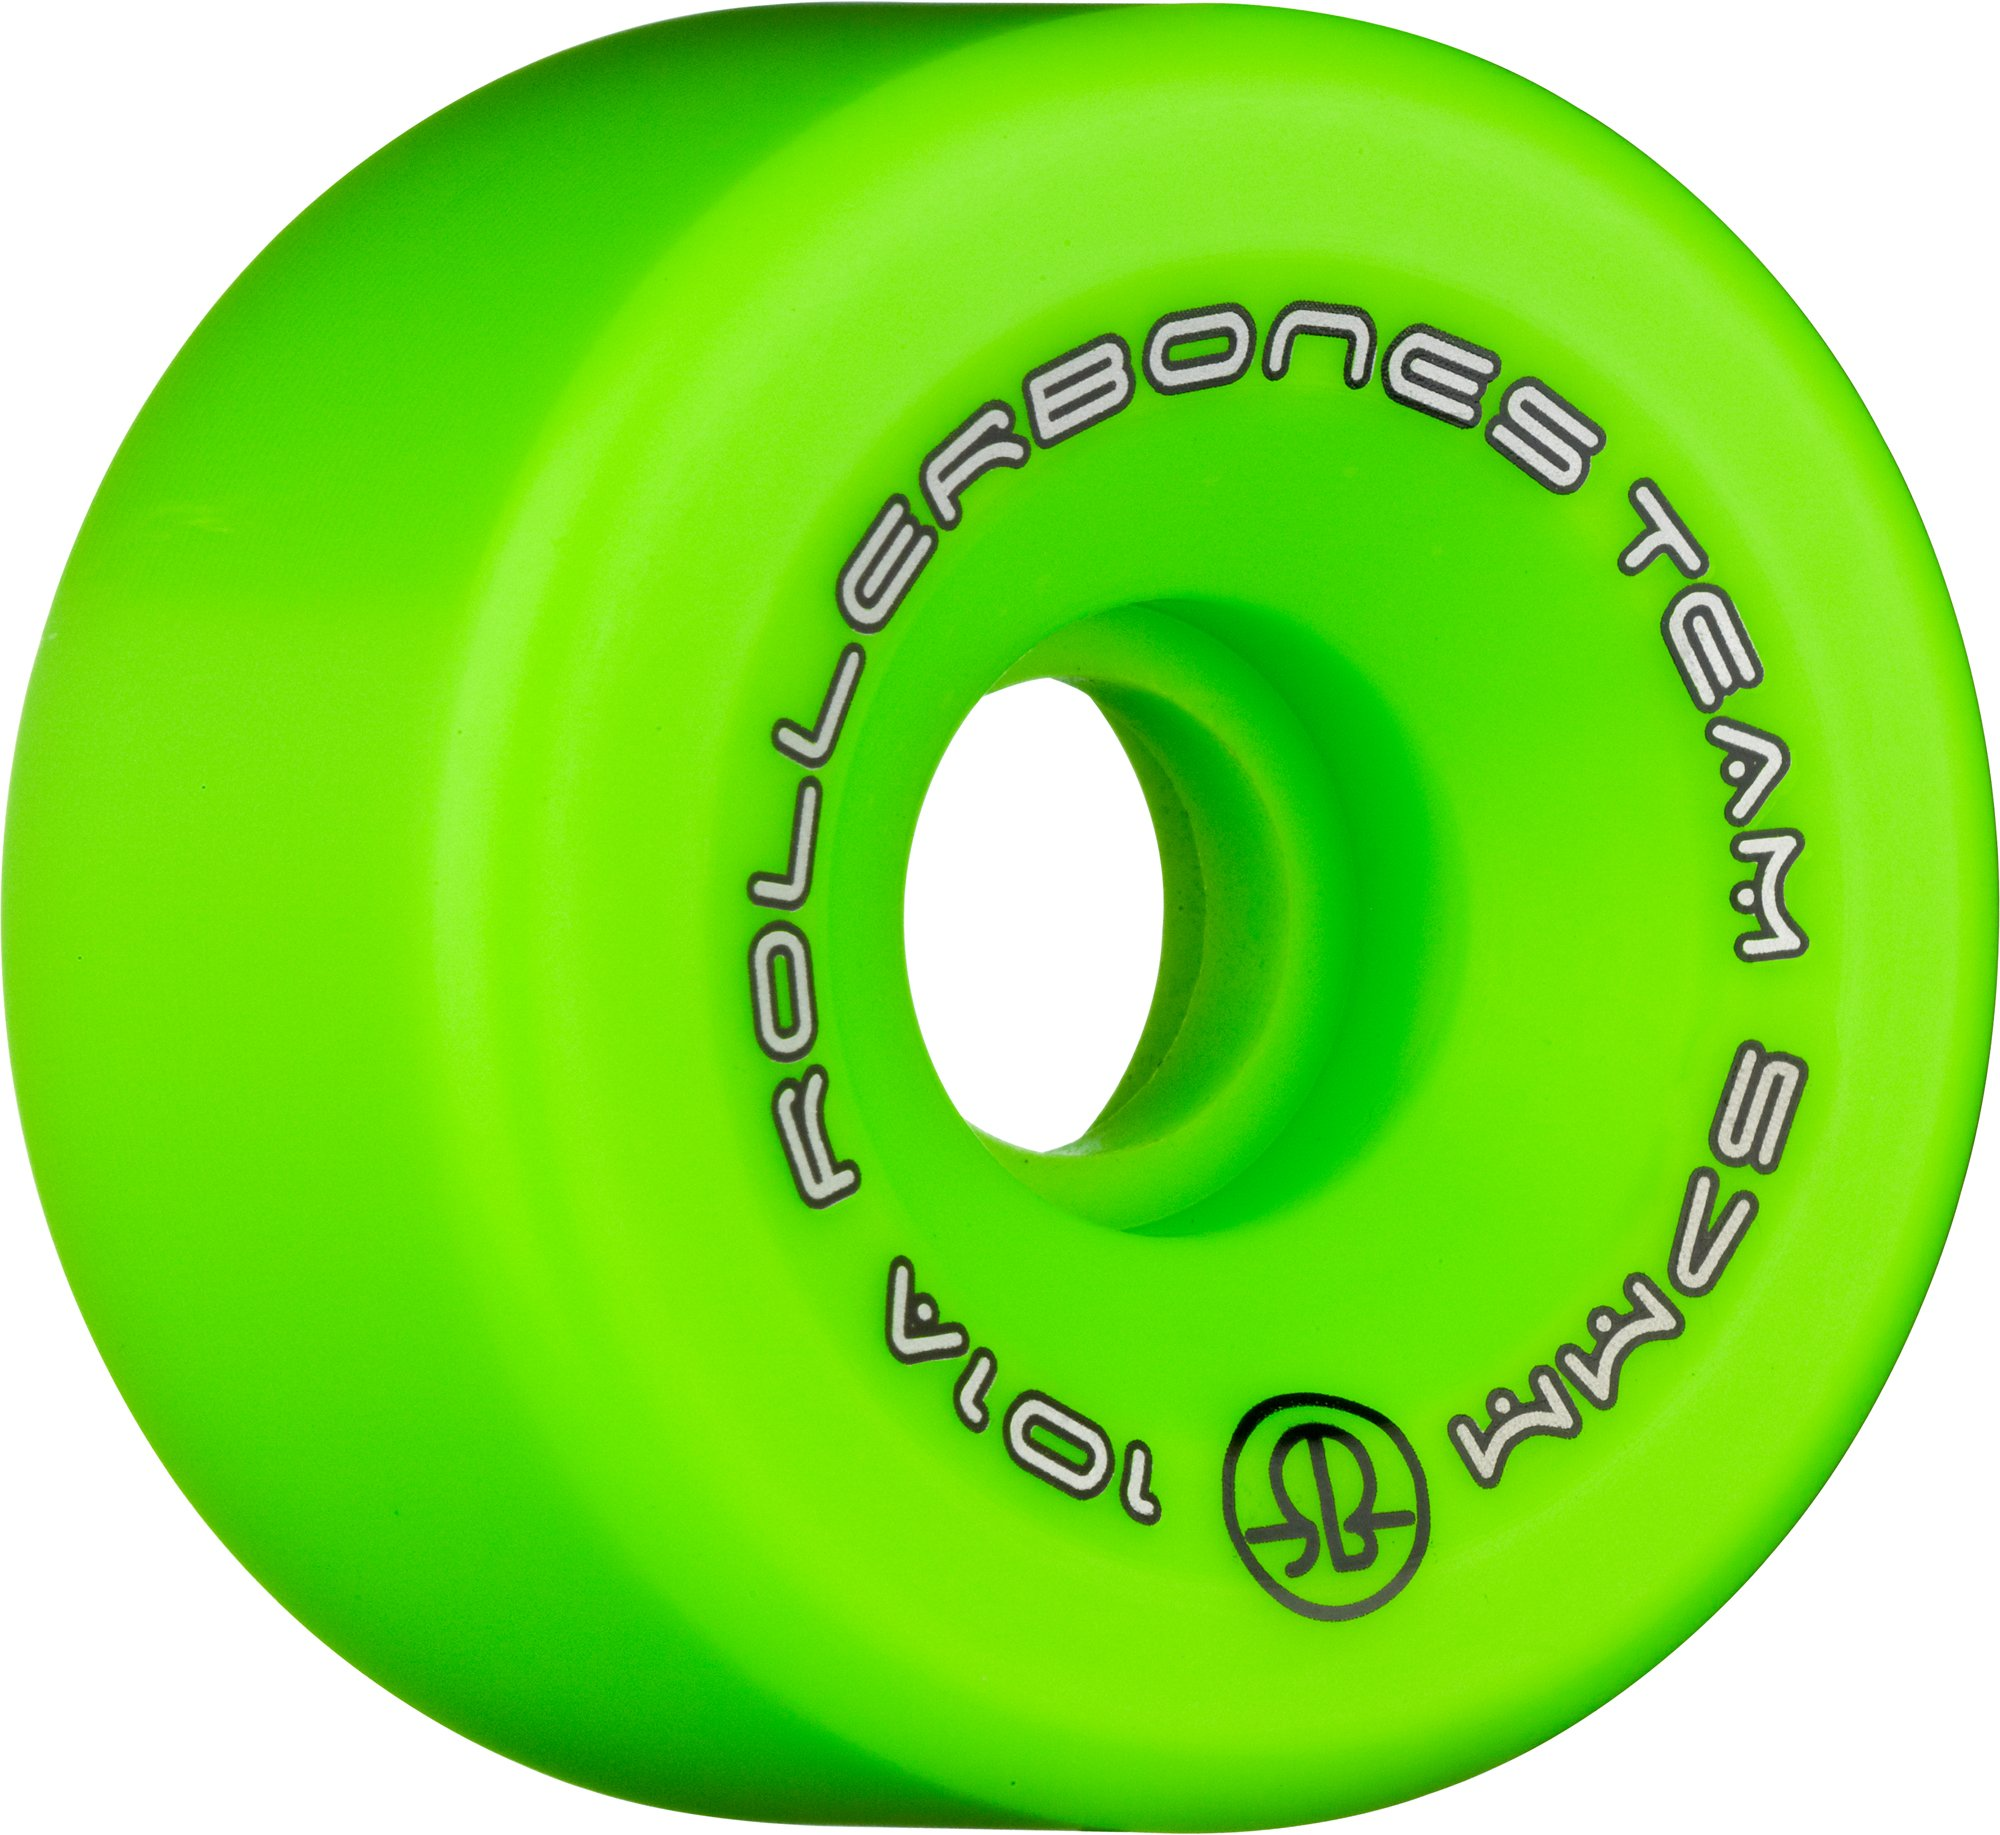 RollerBones Team Logo 101A Recreational Roller Skate Wheels (Set of 8), Green, 57mm by RollerBones